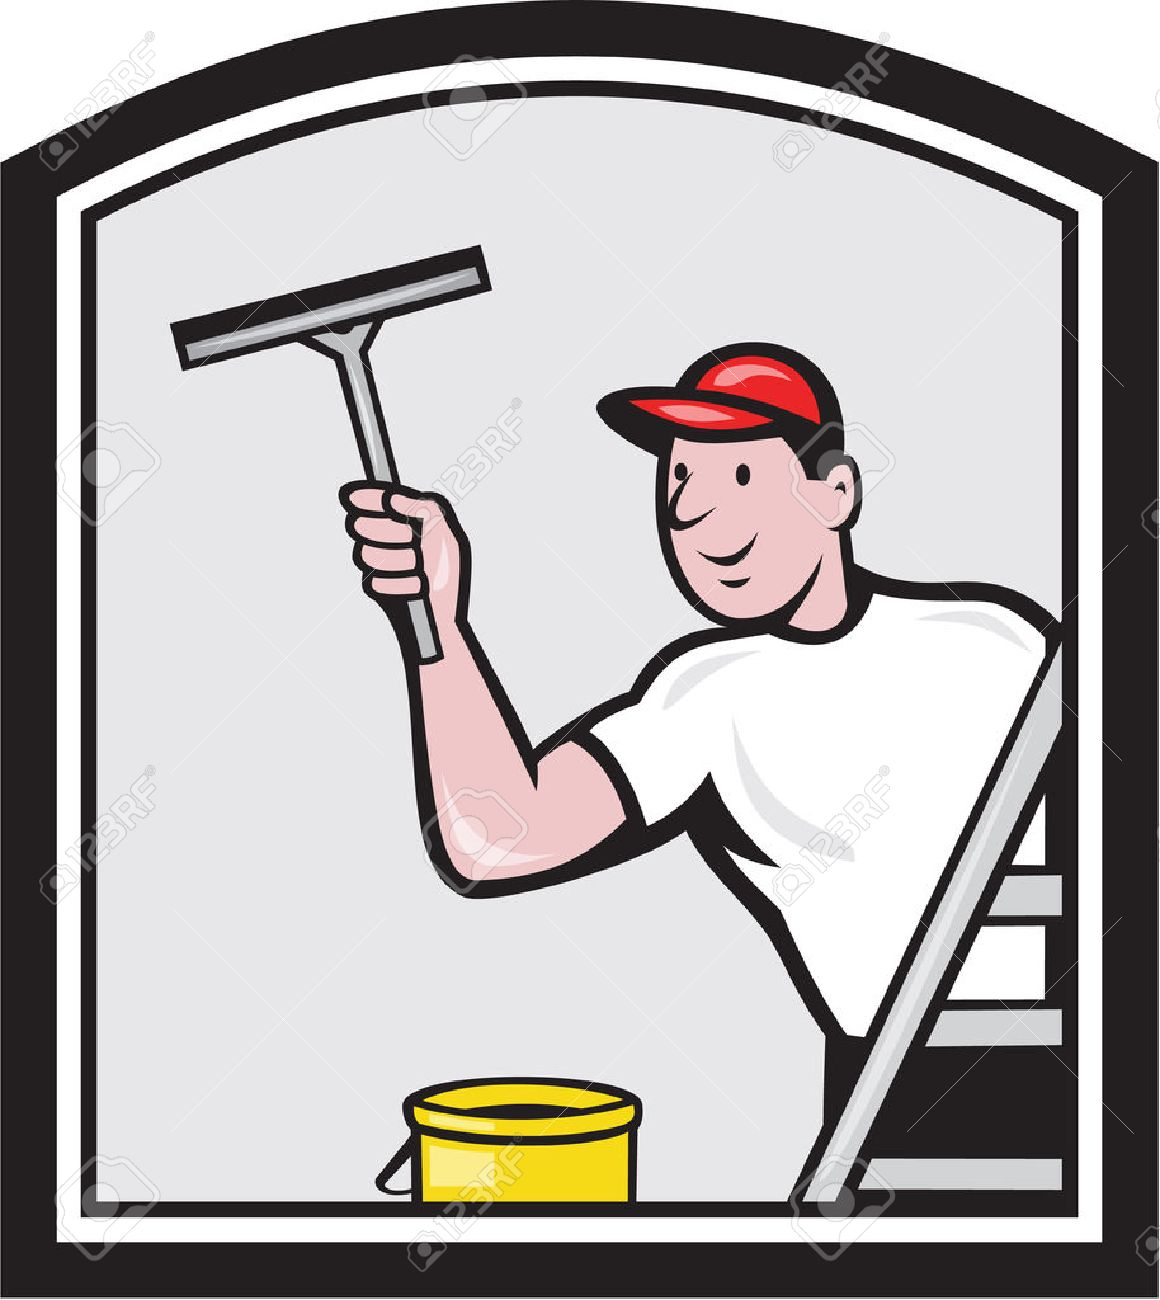 Illustration of a window cleaner cleaning a window with squeegee viewed from rear angle set inside shield on isolated background done in retro style. Stock Vector - 26724890